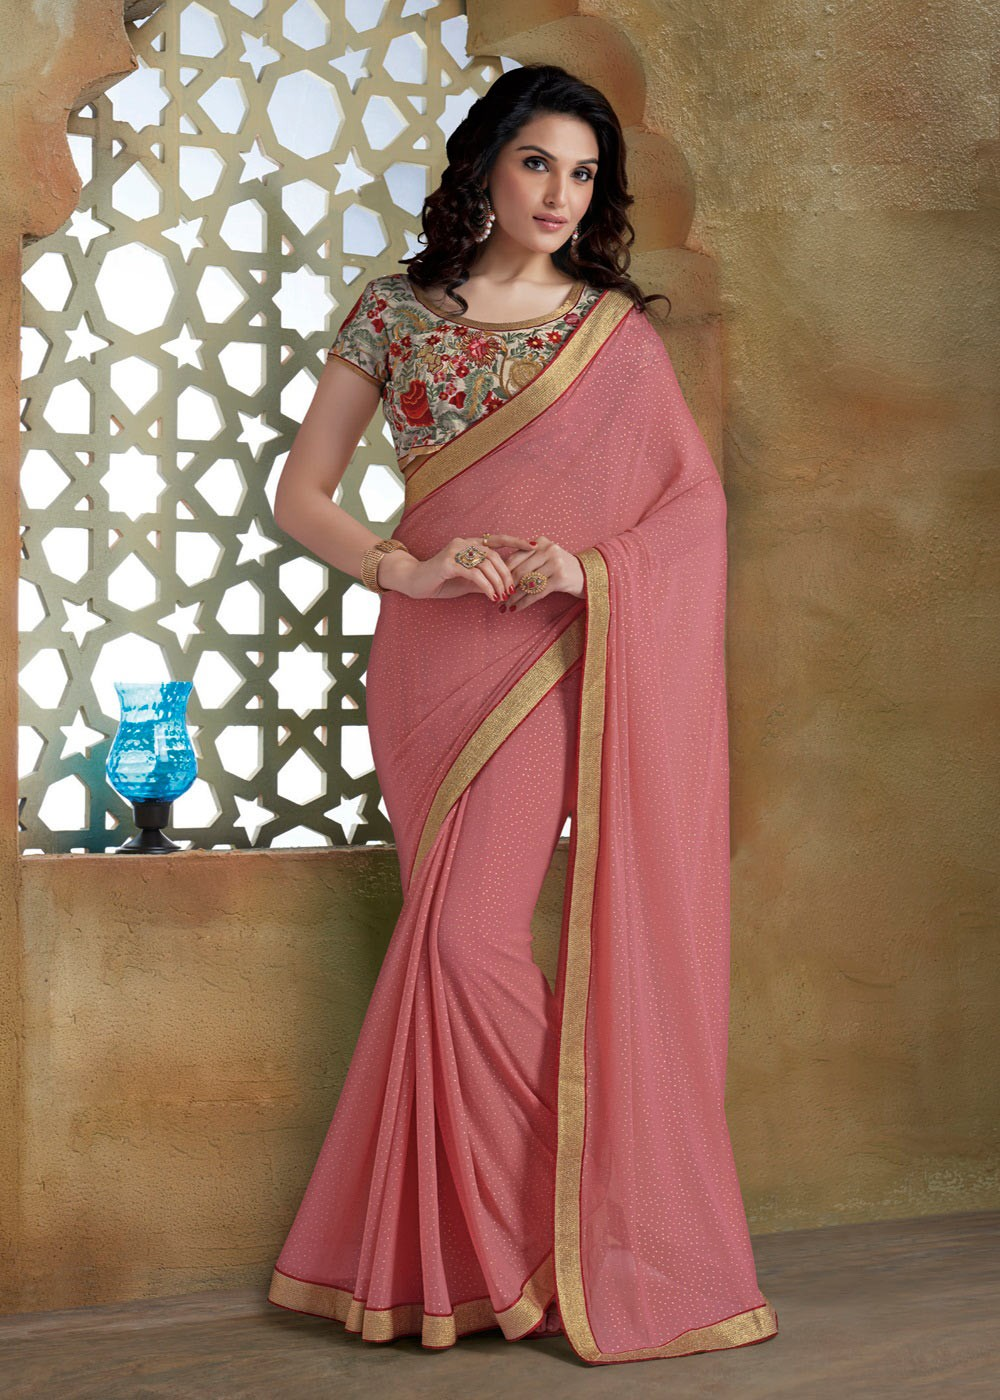 Party Wear Sarees pink unique indian party wear georgette saree with embroidered blouse a16093 HMGOQDL